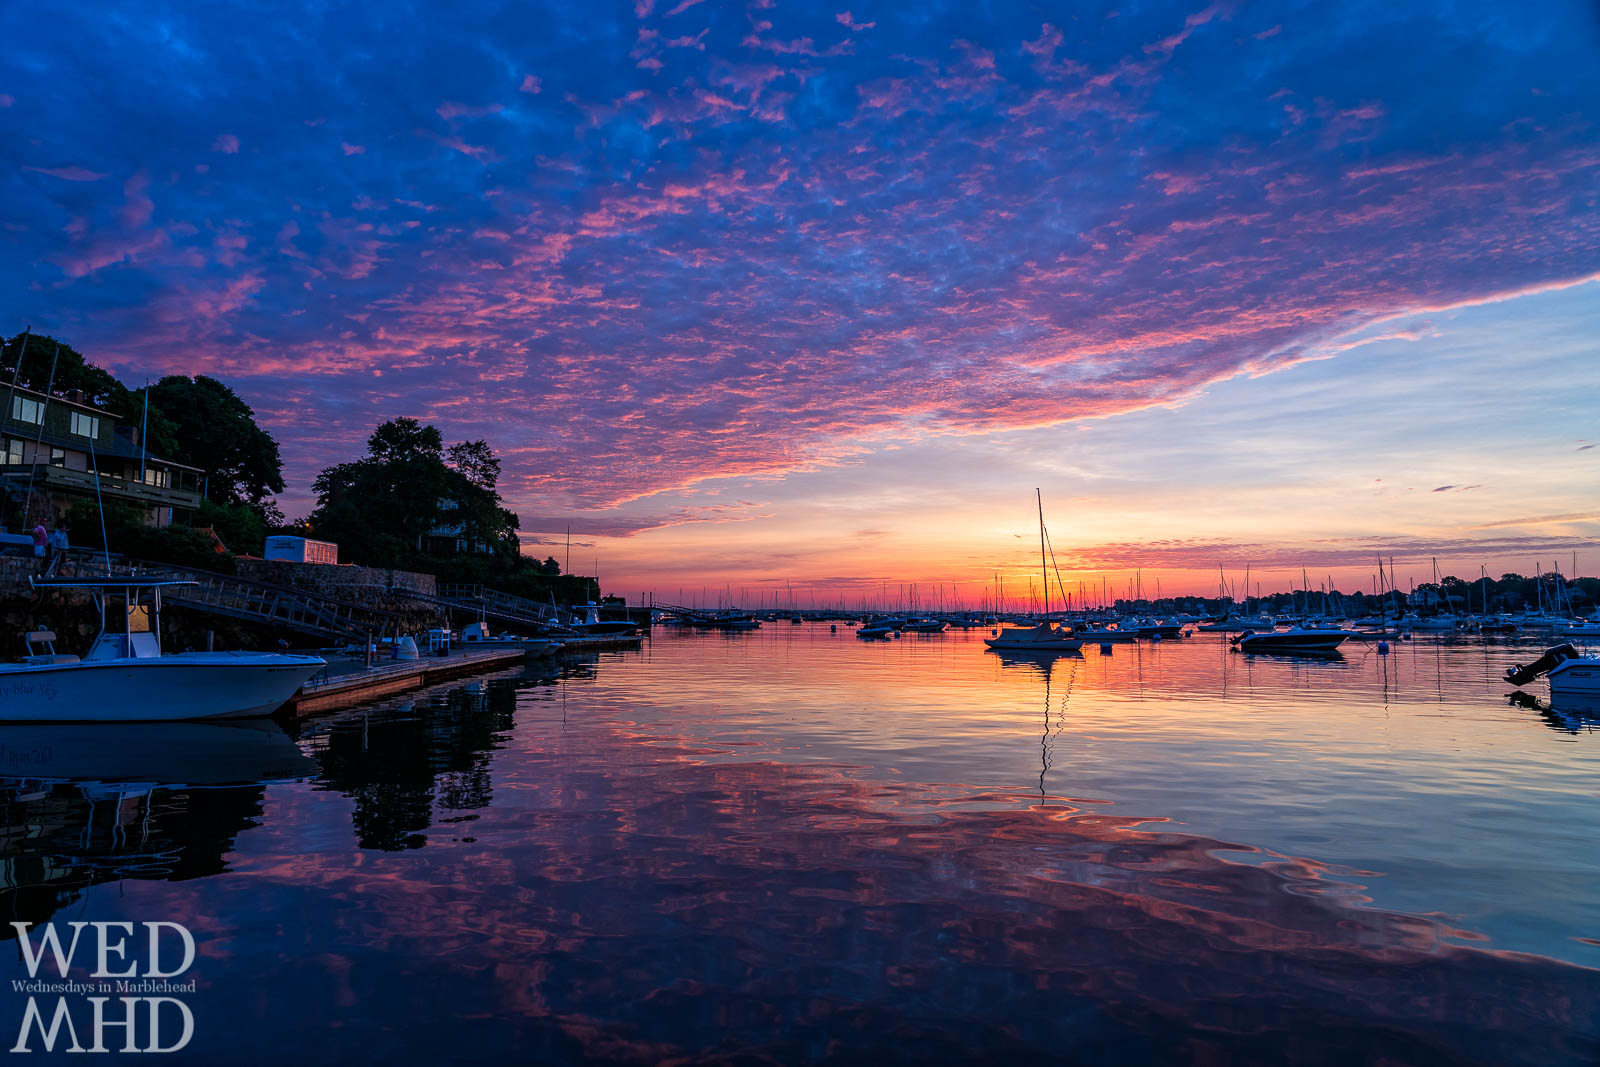 A seemingly painted sunrise is perfectly reflected in the still water of Marblehead Harbor with a boat named Blue Sky perfectly positioned in frame